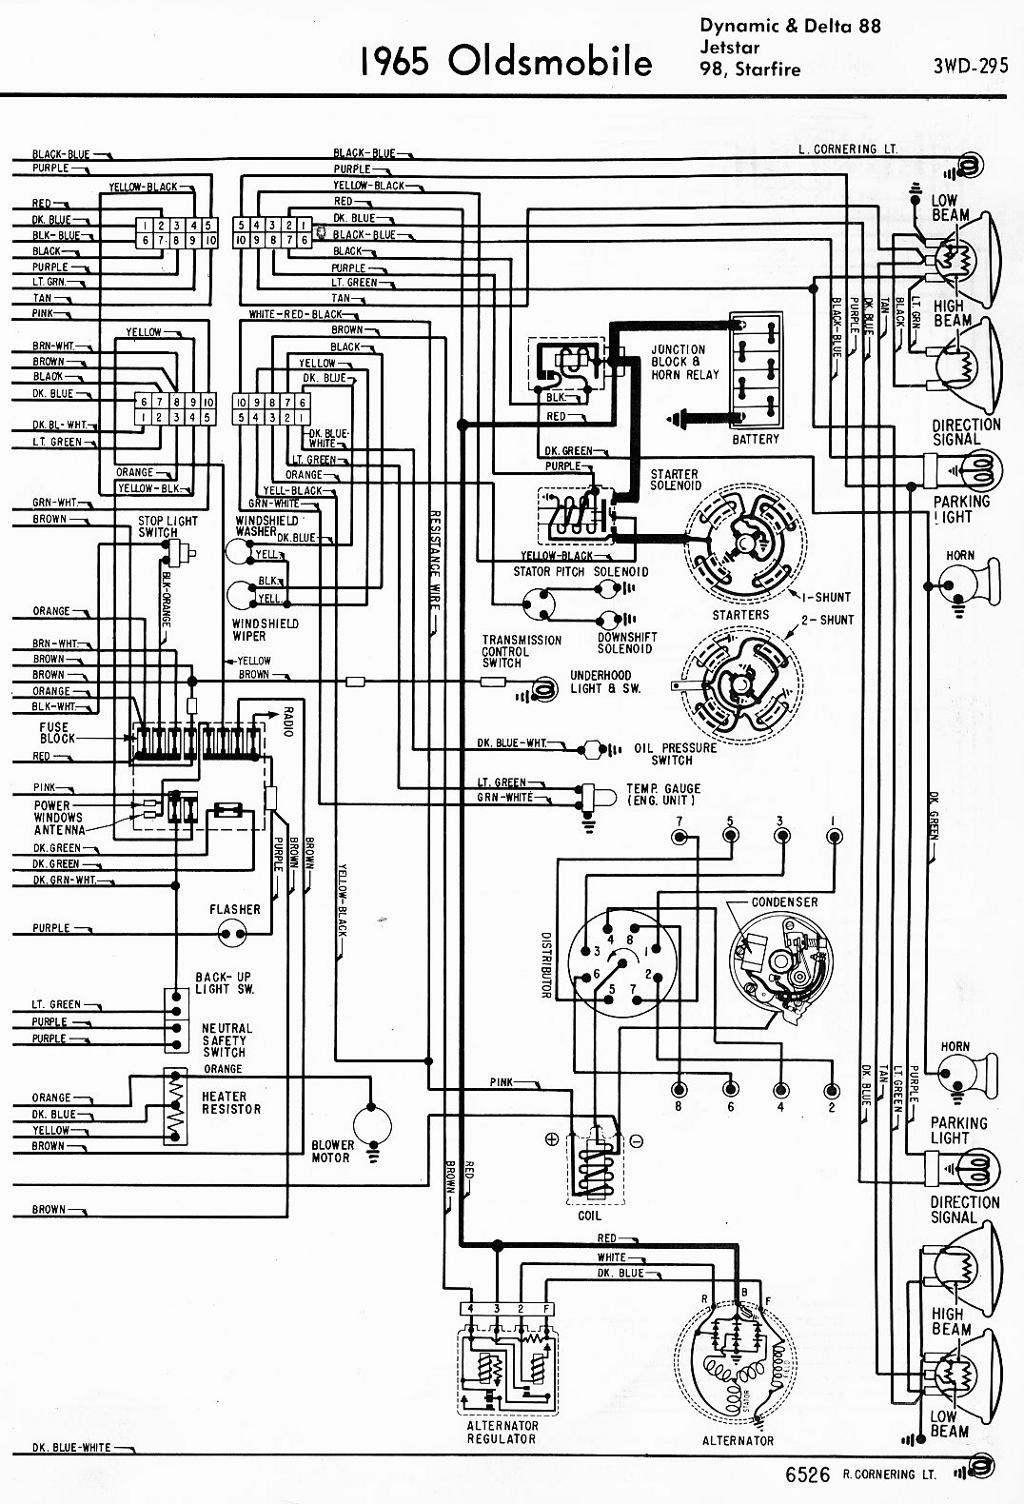 Oldsmobile Silhouette Fuse Box Wiring Library 1997 Bravada Wipers 2001 Diagram 2007 Pontiac Grand Prix Source